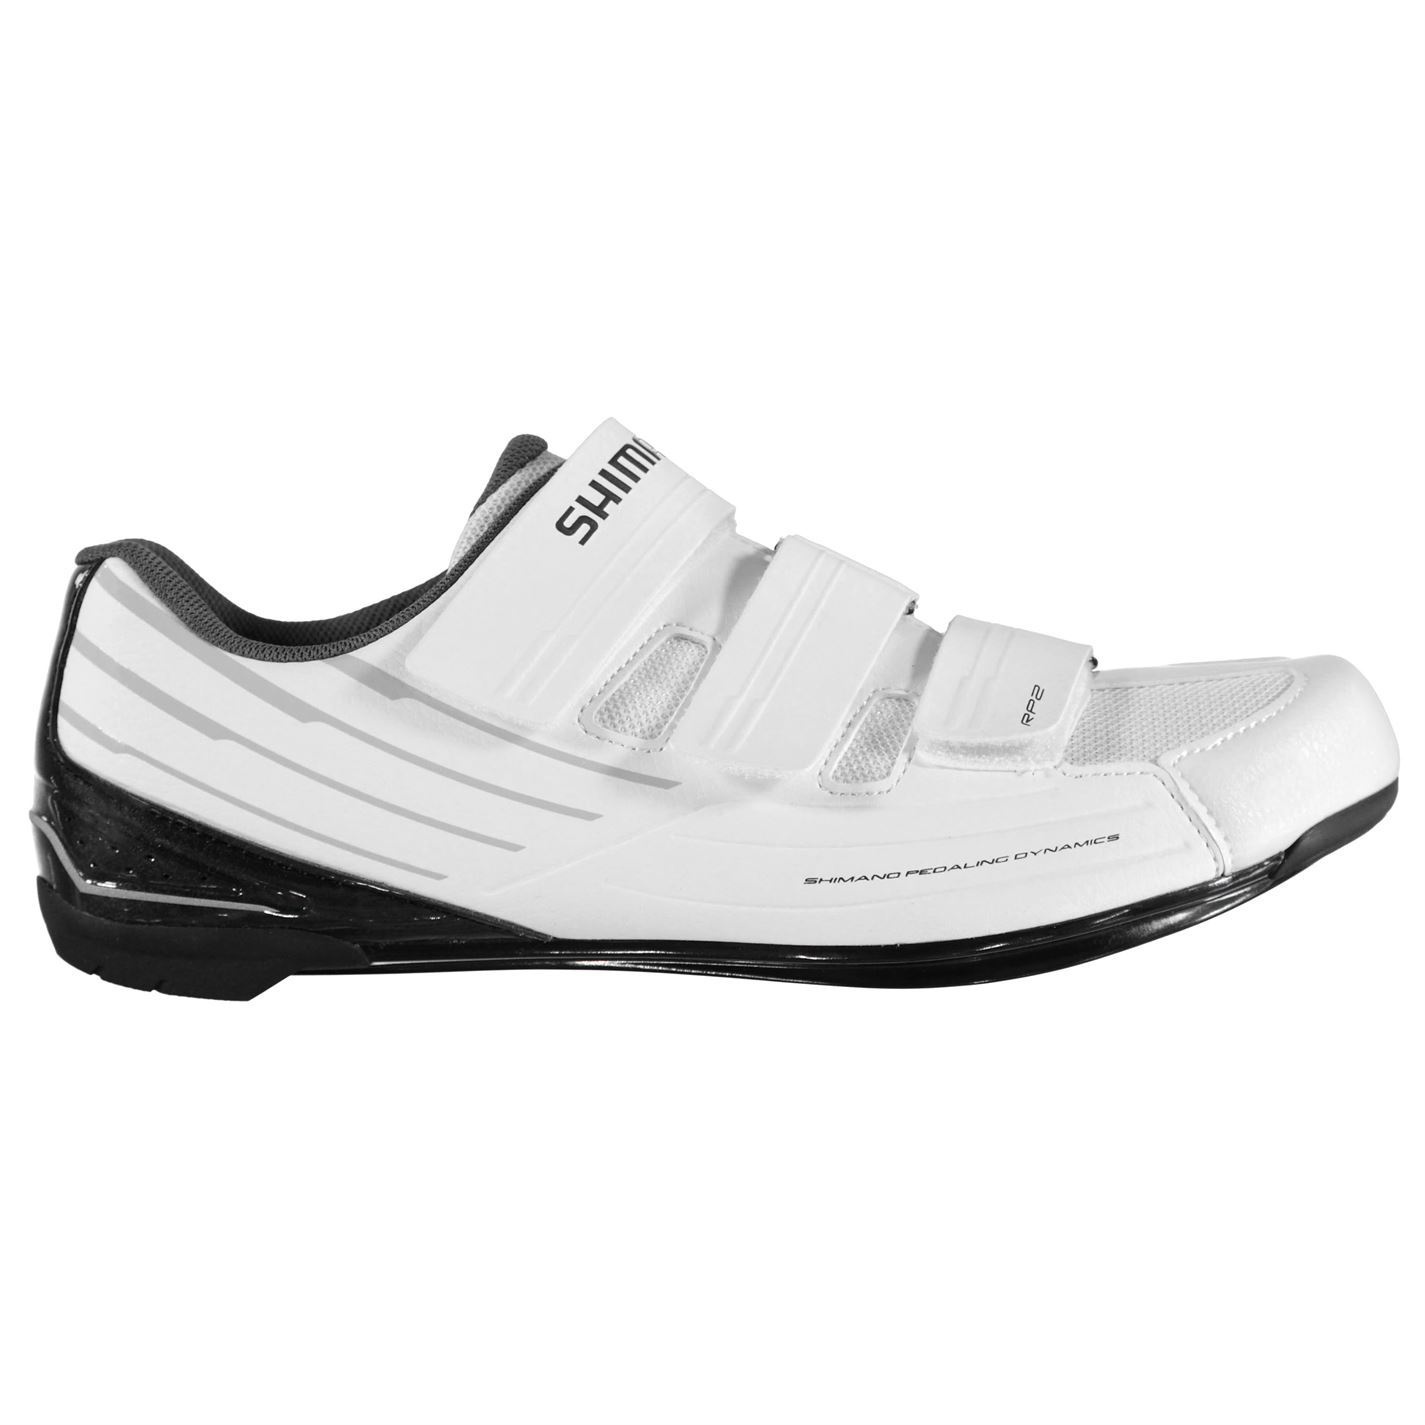 d9514b3a9cc Shimano RP2 SPD SL Cycling Shoes Mens White Trainers Footwear | eBay